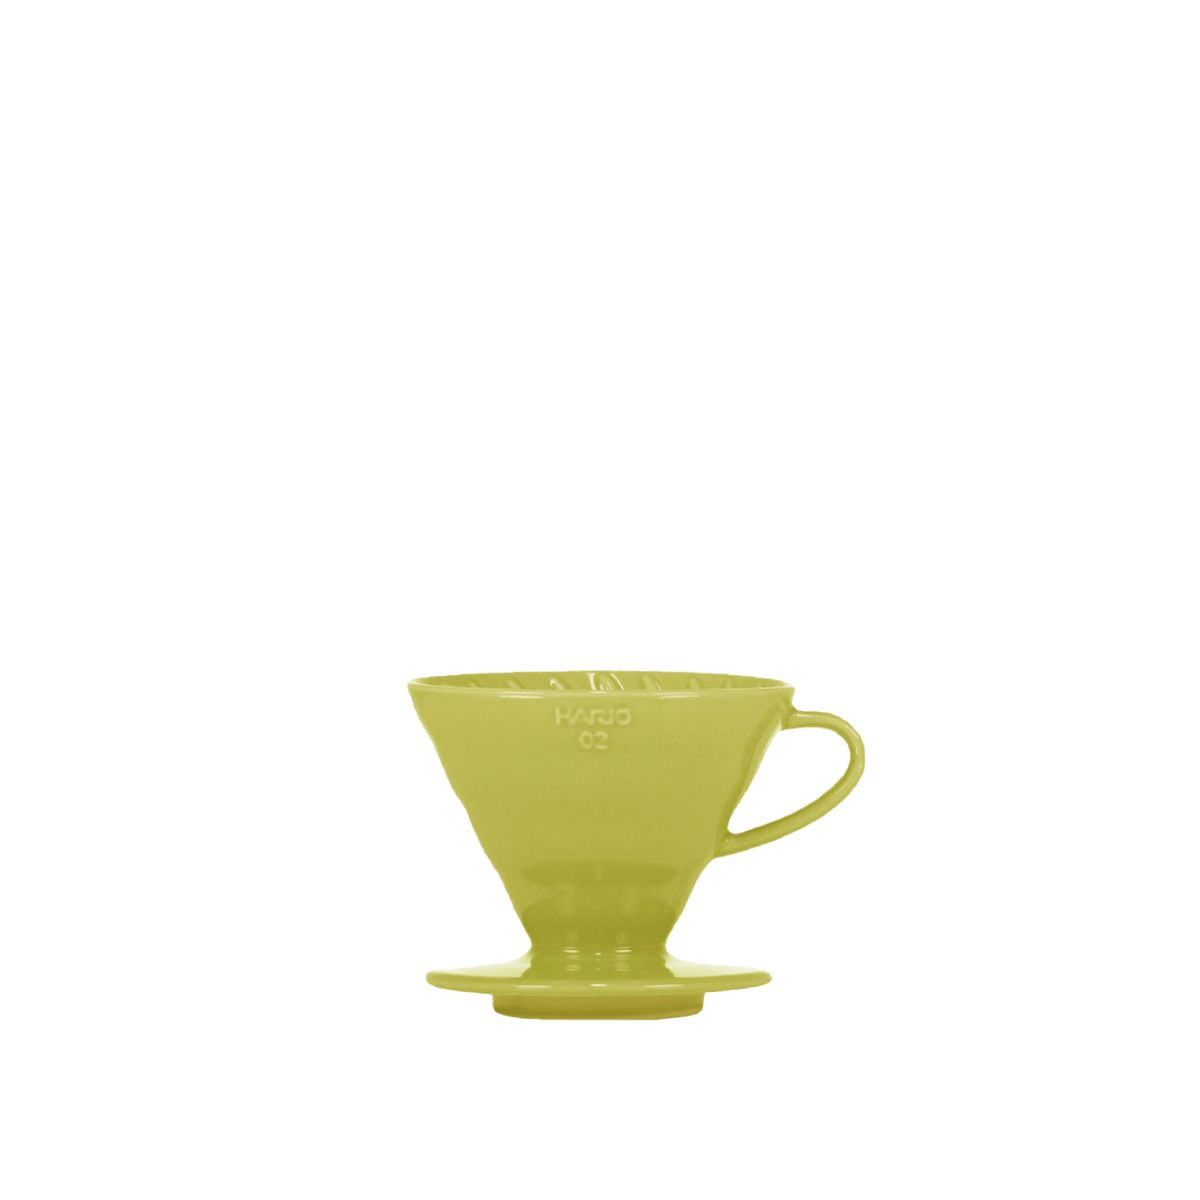 V60 Porcelain Dripper Hario [3/4 cups] - Light green